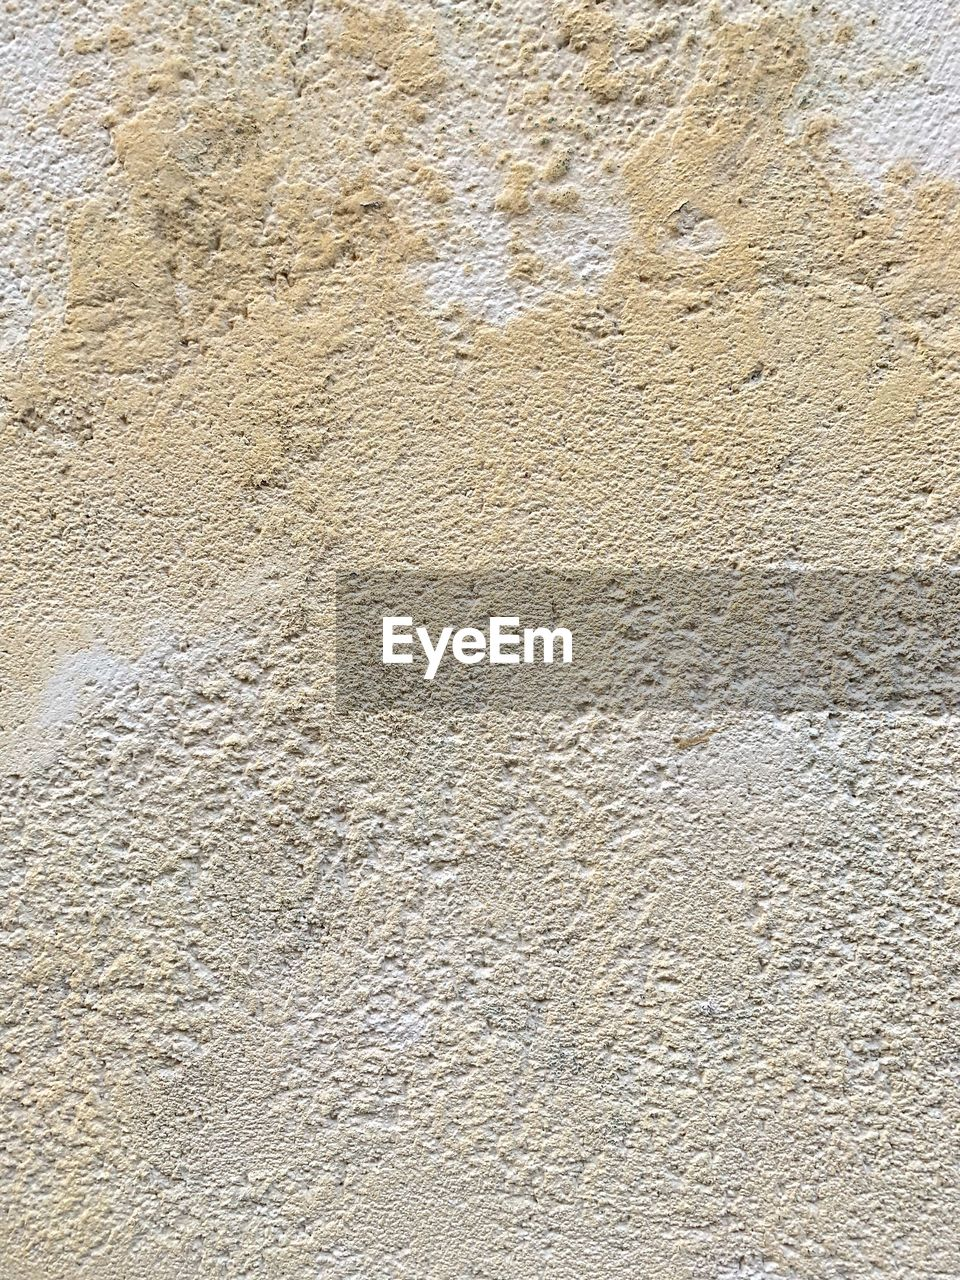 textured, backgrounds, full frame, wall - building feature, built structure, no people, architecture, day, rough, close-up, pattern, concrete, wall, outdoors, nature, building exterior, beige, sand, brown, concrete wall